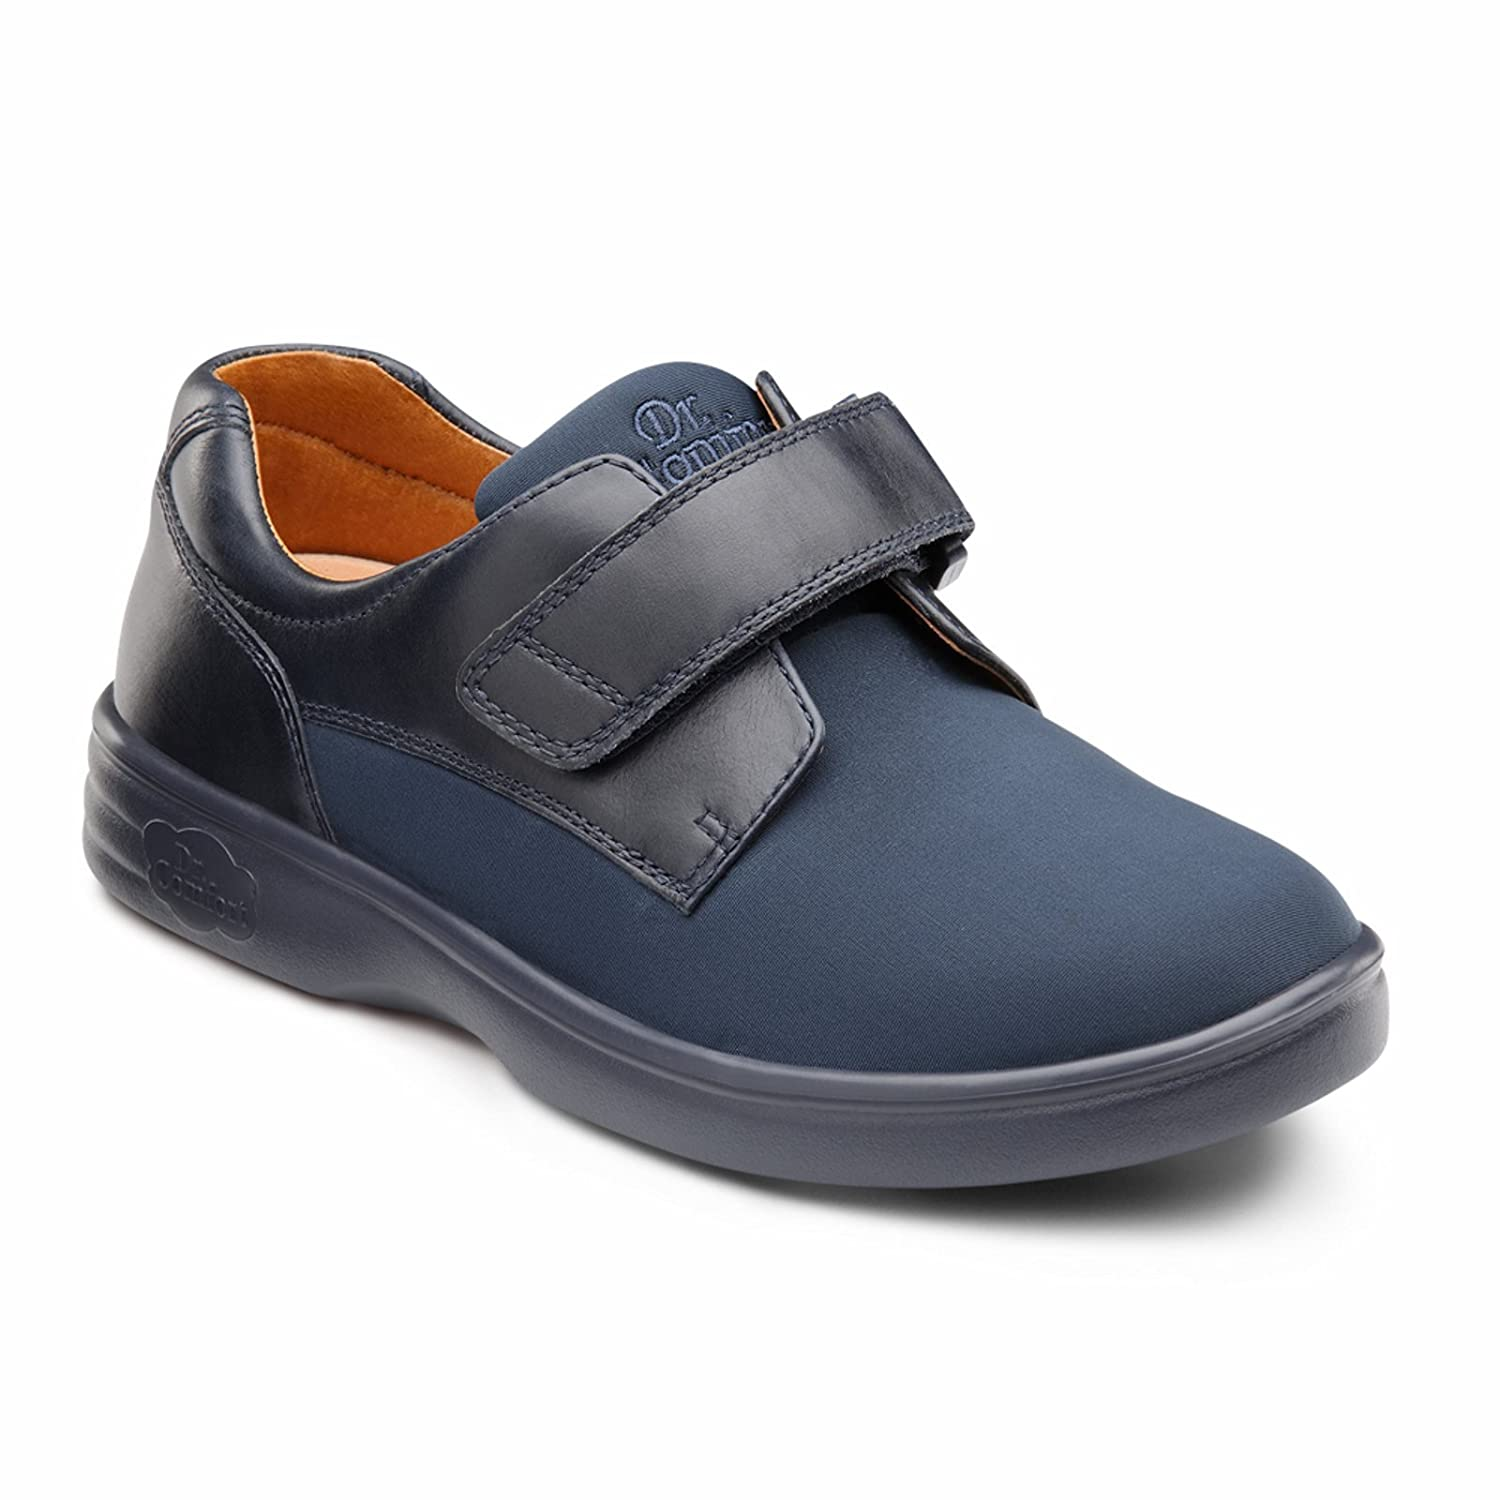 Dr. Comfort Annie Womens Casual Shoe B00IO807AI -8.5 Medium (A-B) Blue Velcro US Woman|Blue